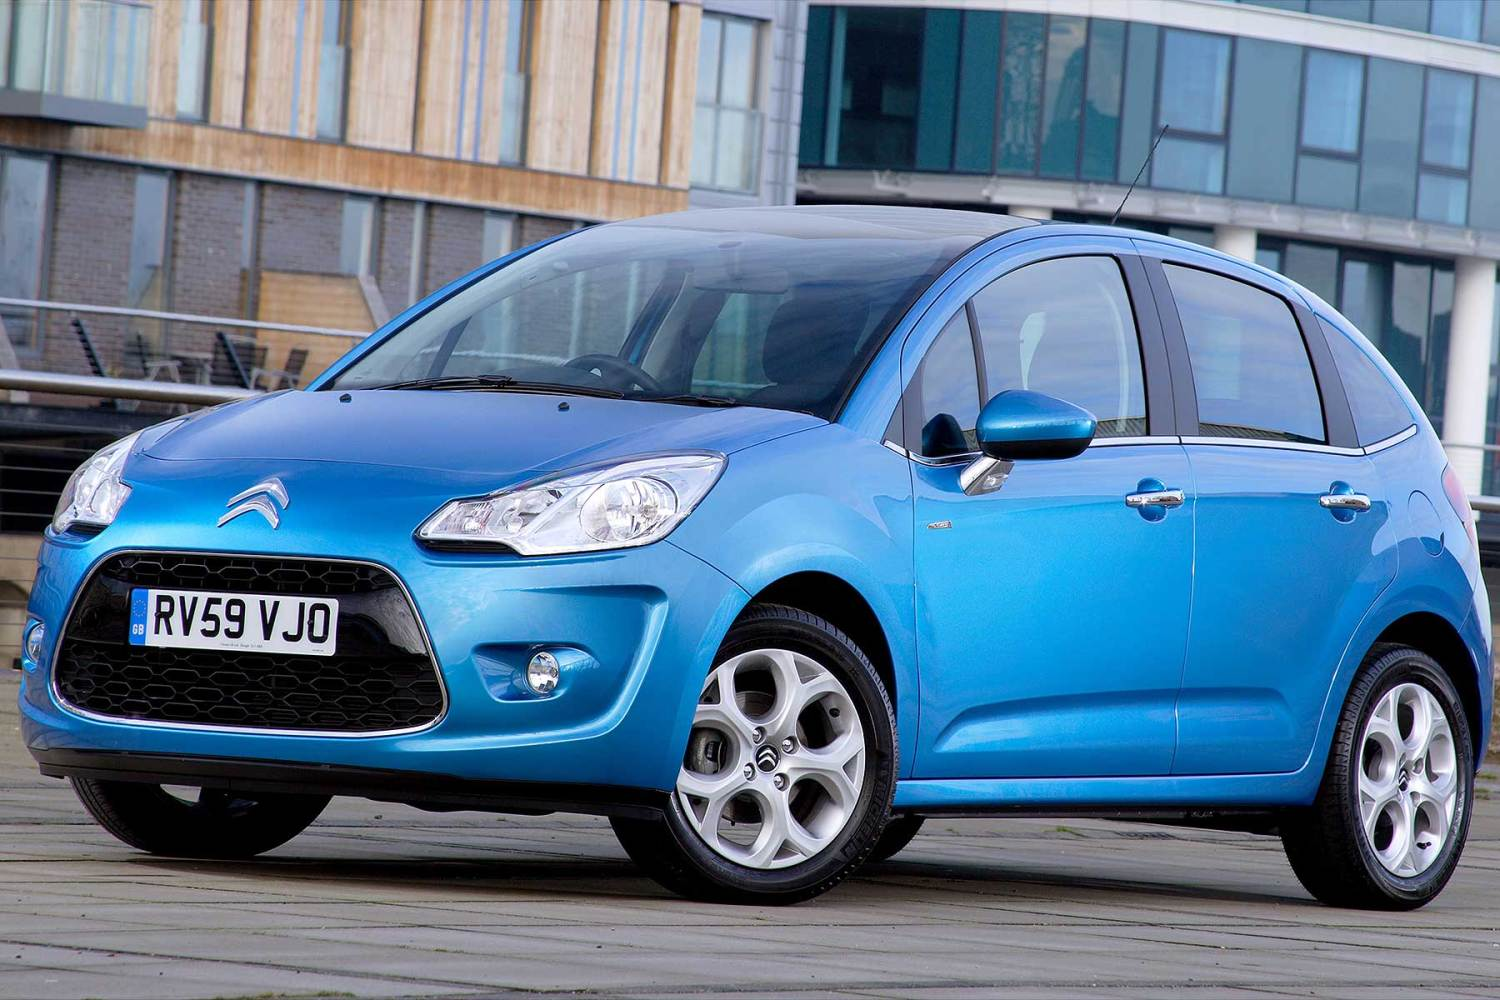 The cheapest cars to insure for 17-18 year olds: Citroen C3